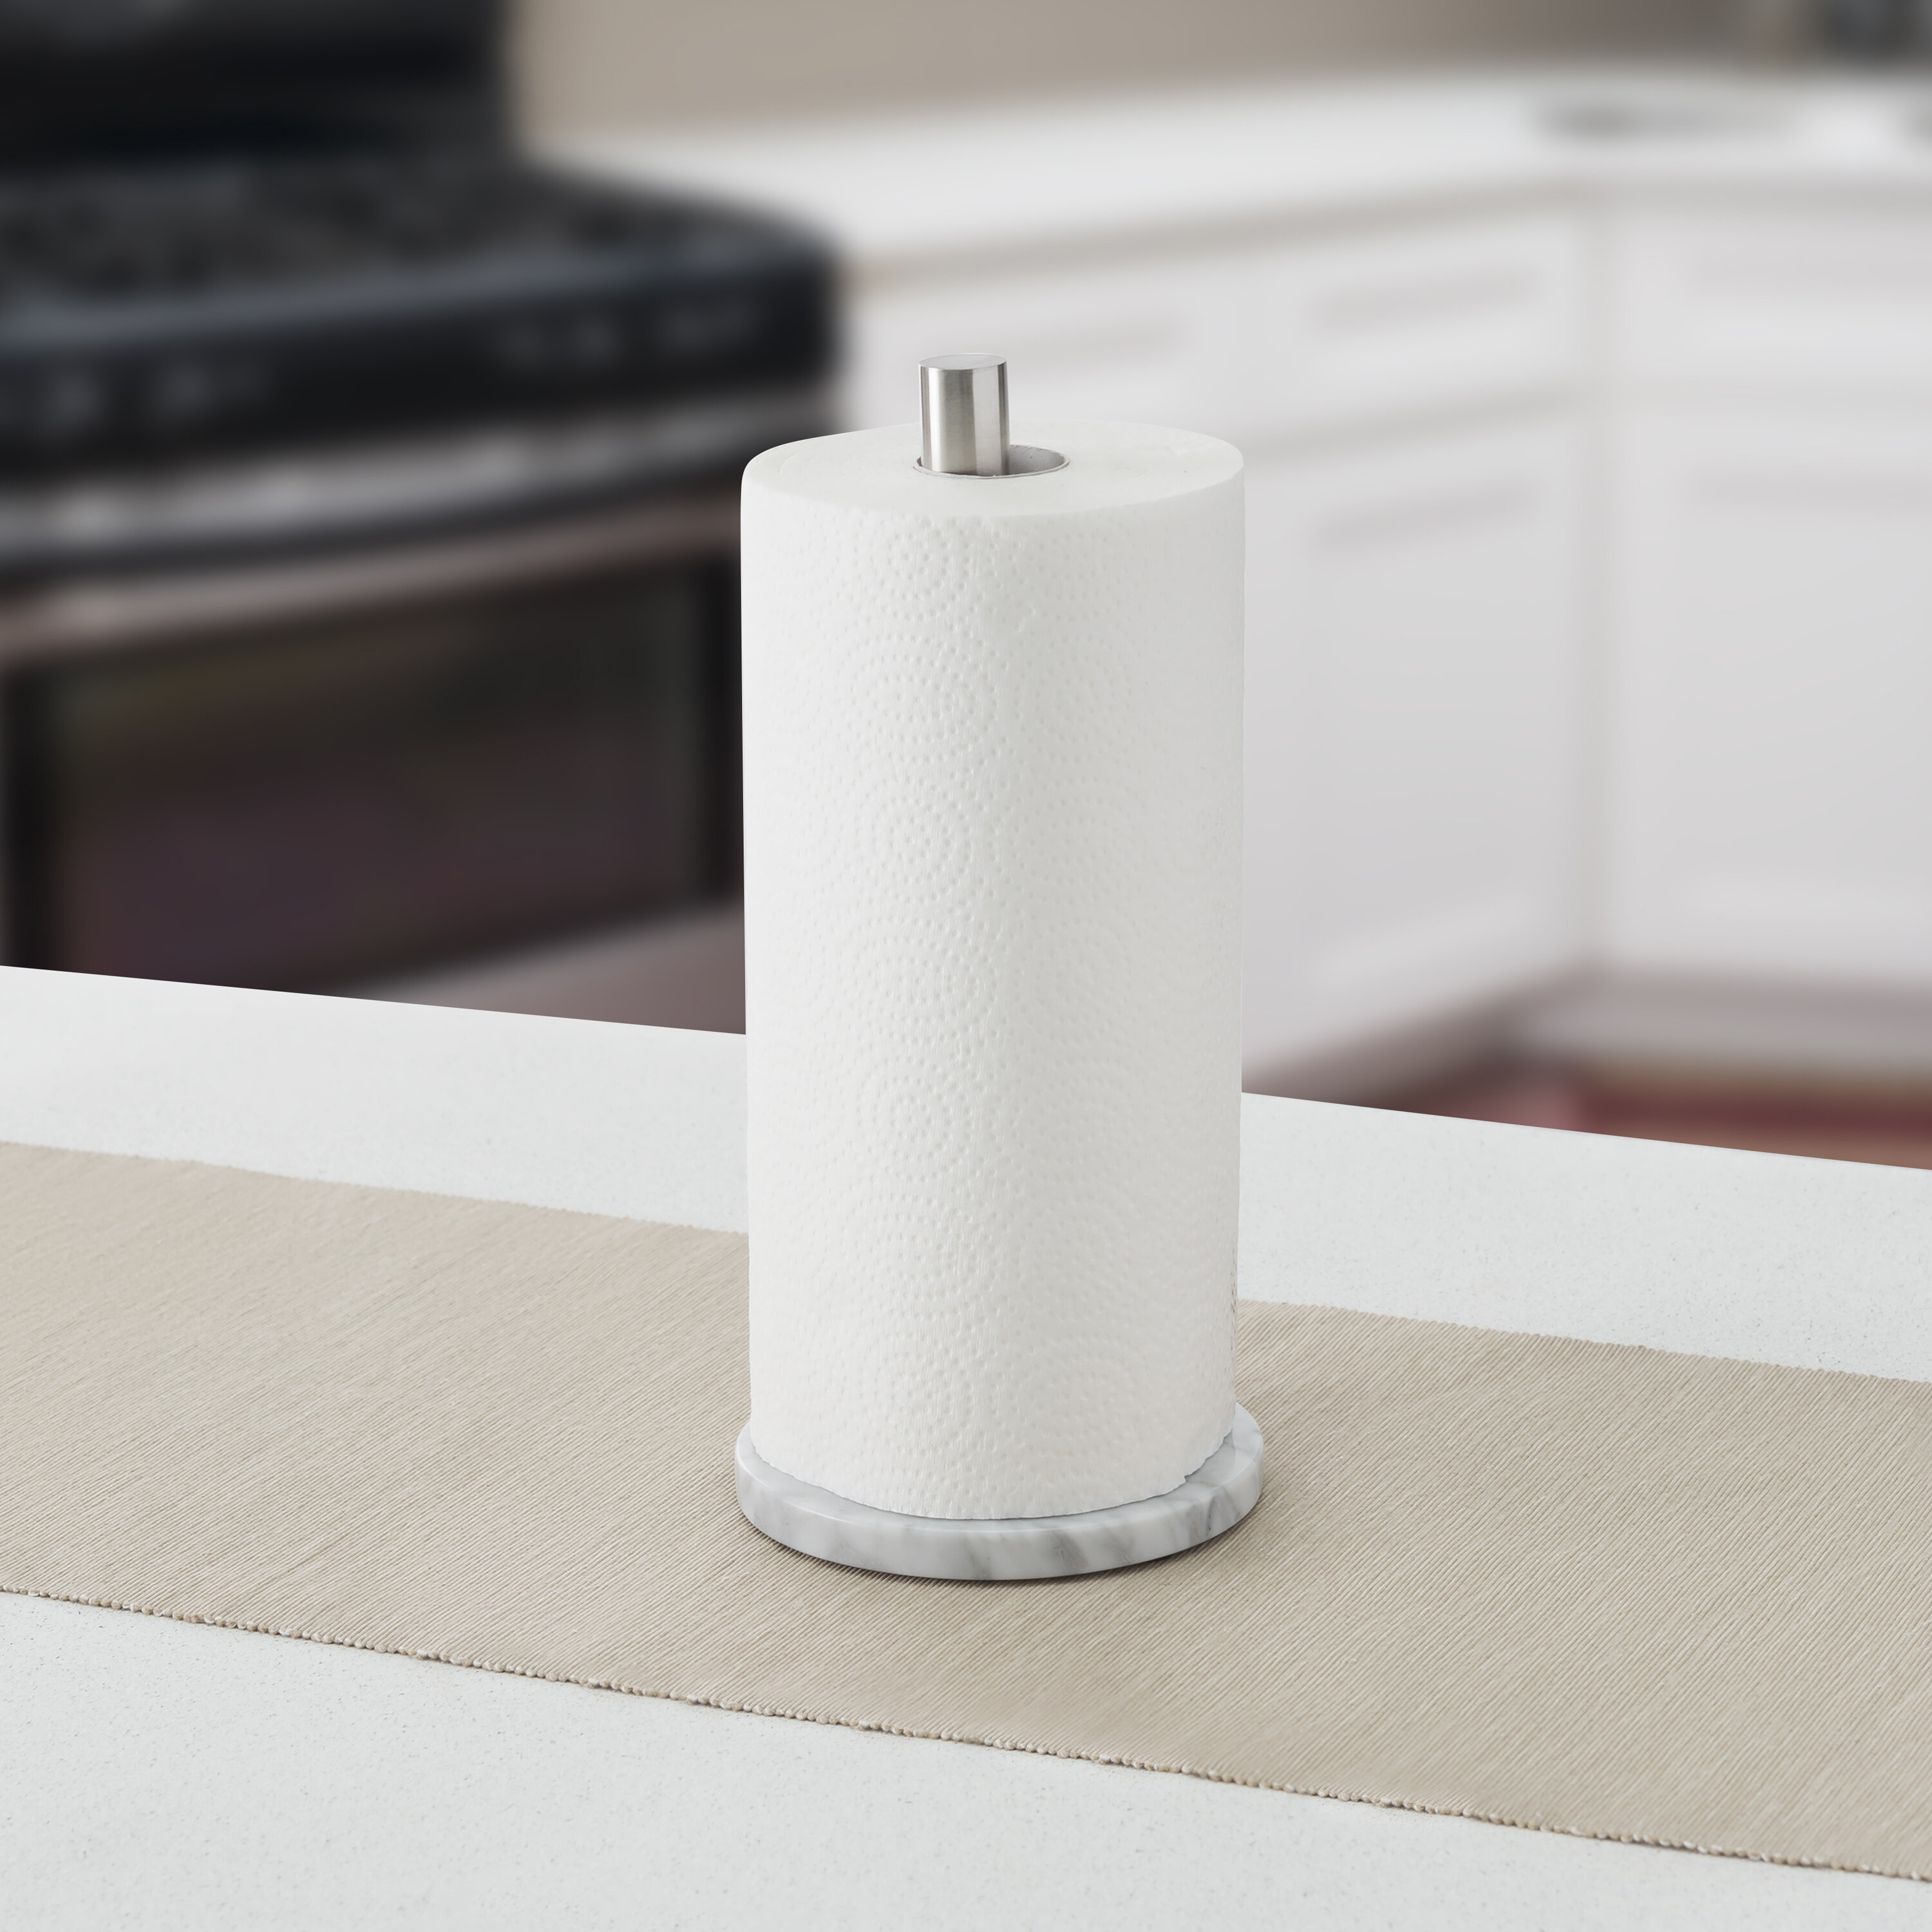 LoXTong Napkin Holder Modern Style Stainless Steel Collection Napkin Holder Paper Towel Rack Table Decoration for Kitchen Countertops